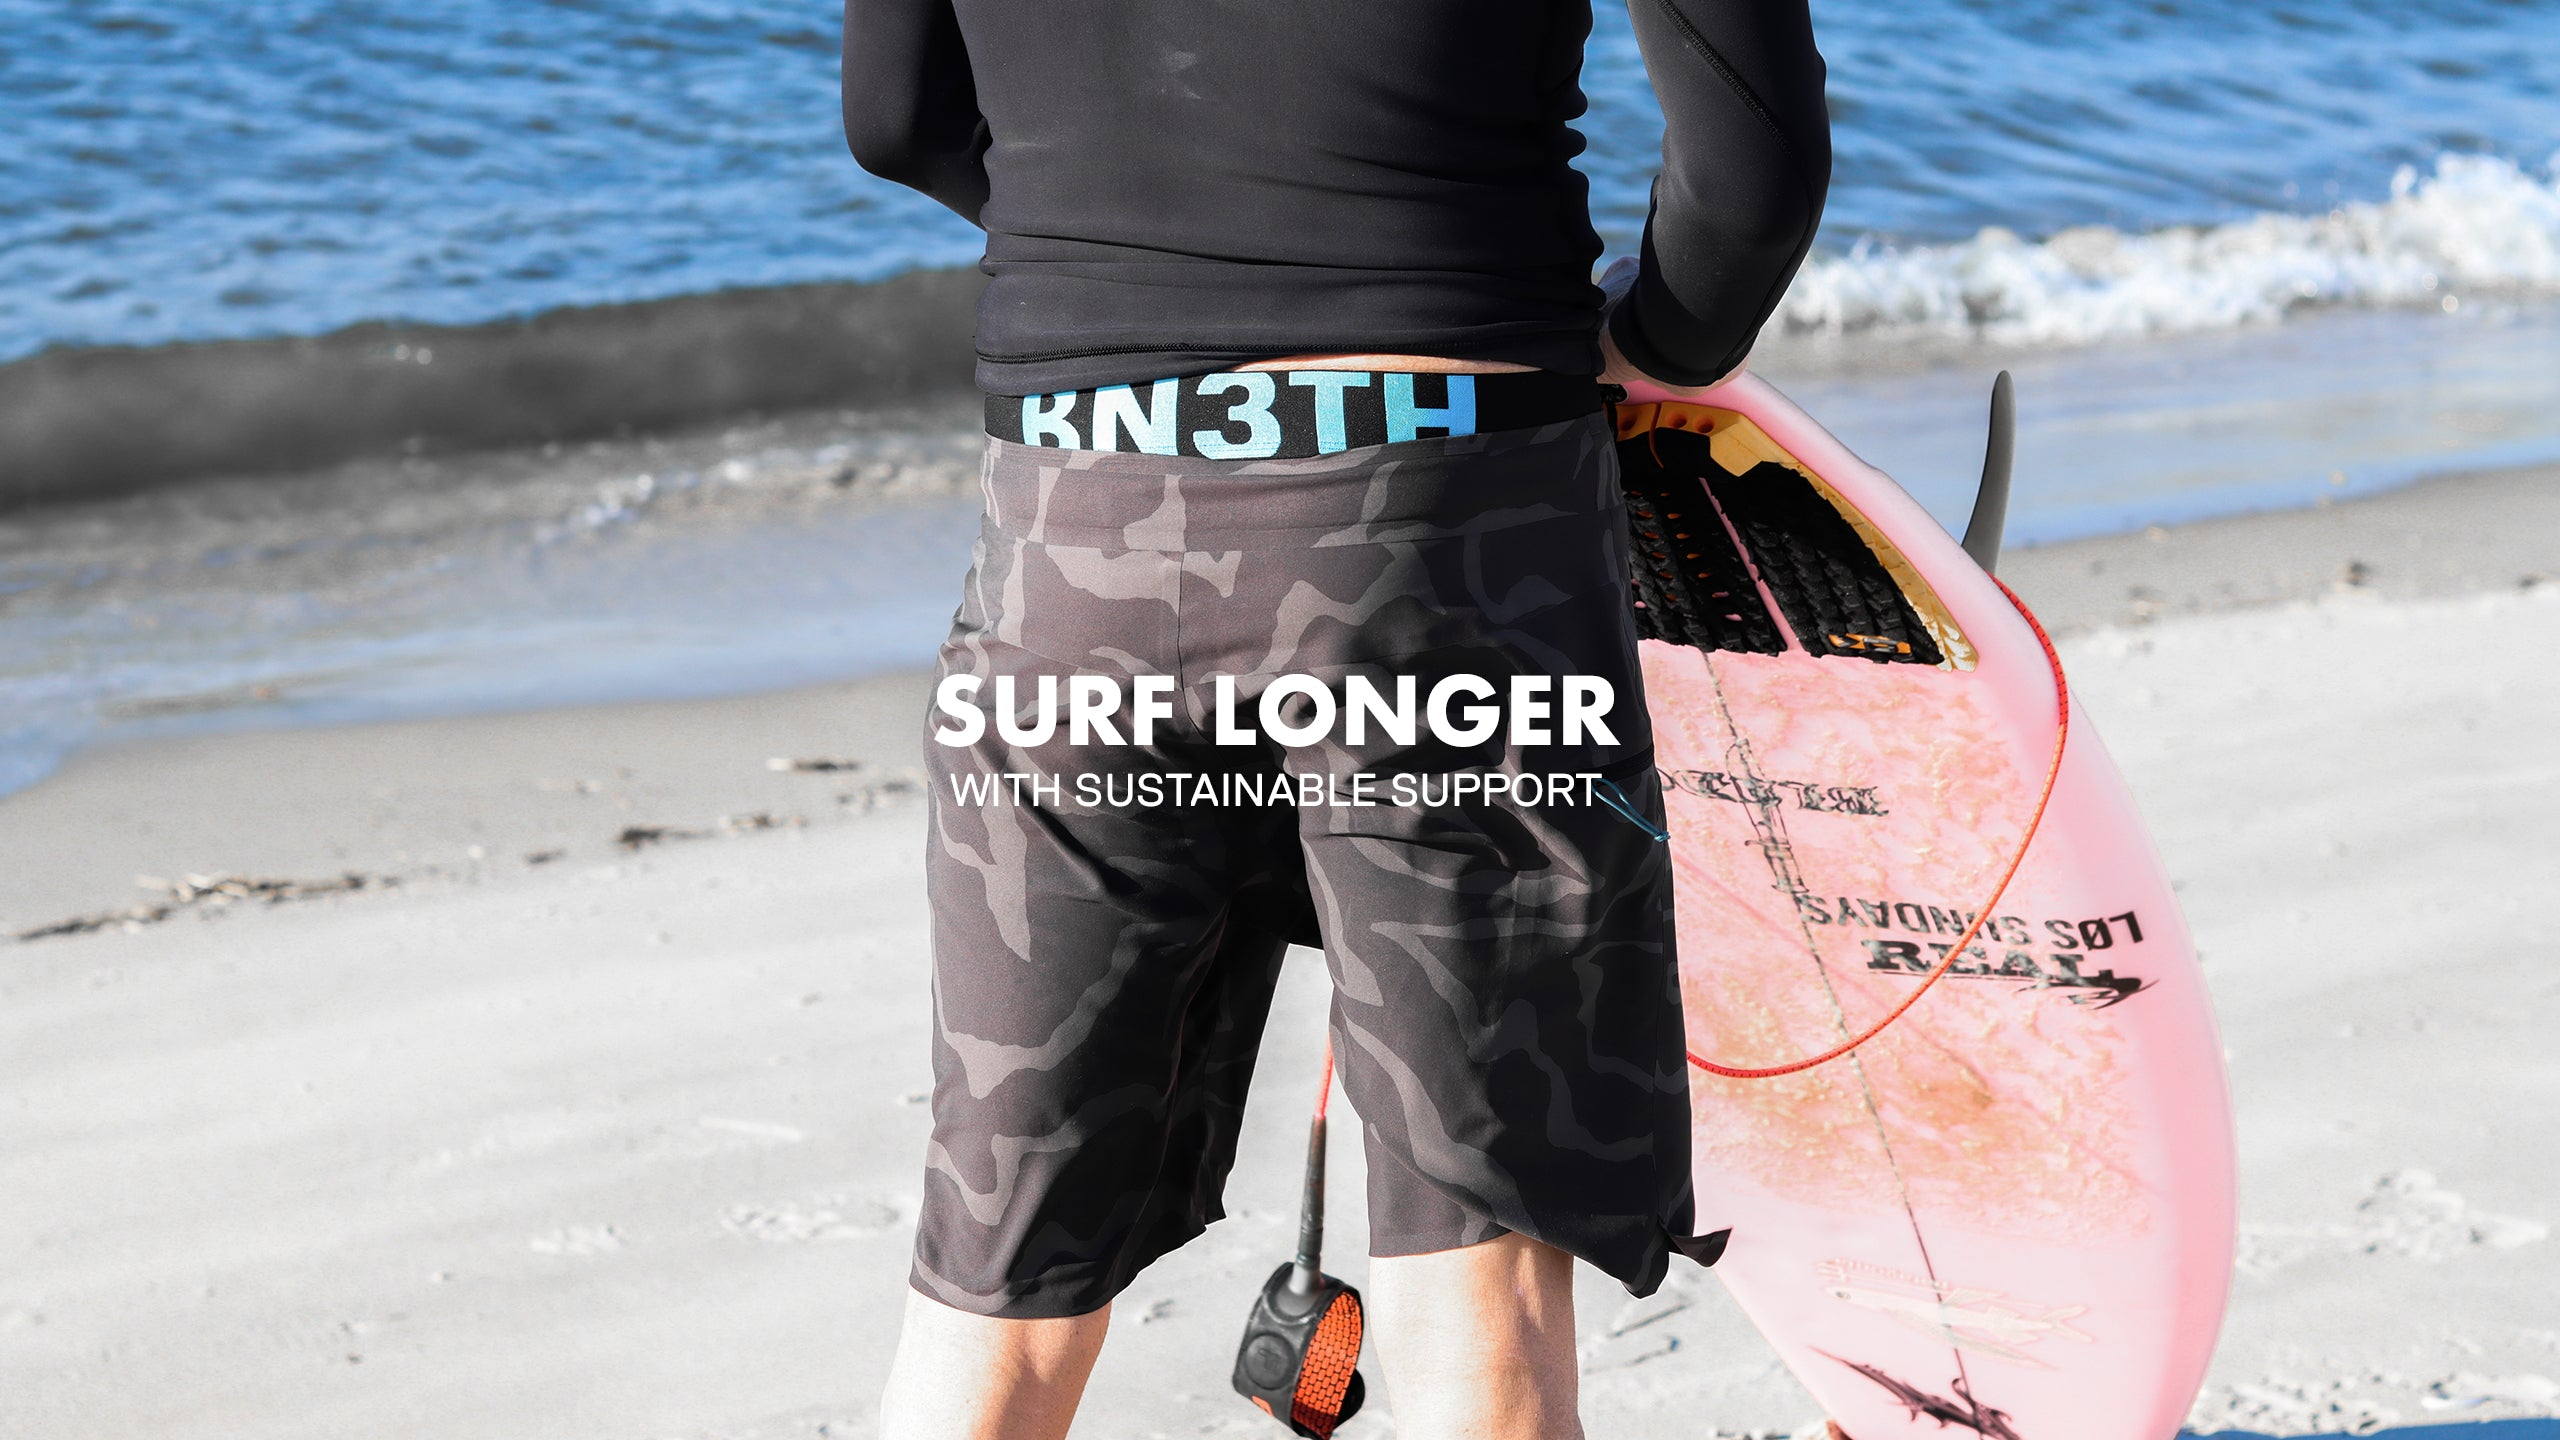 Supportive surf short liner anti chafe and rub free